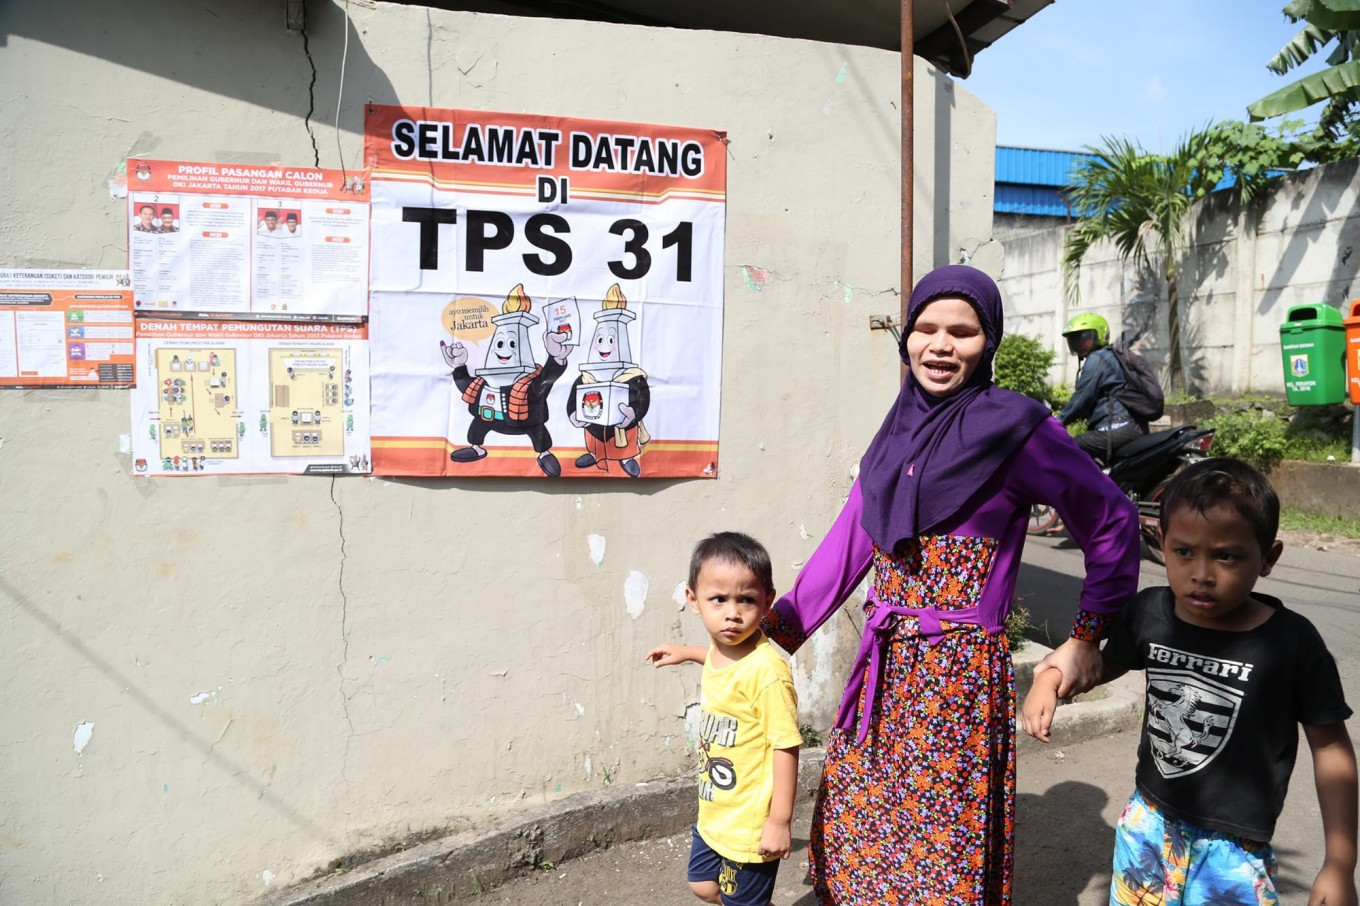 INSIGHT: What went (not) right in the Jakarta election